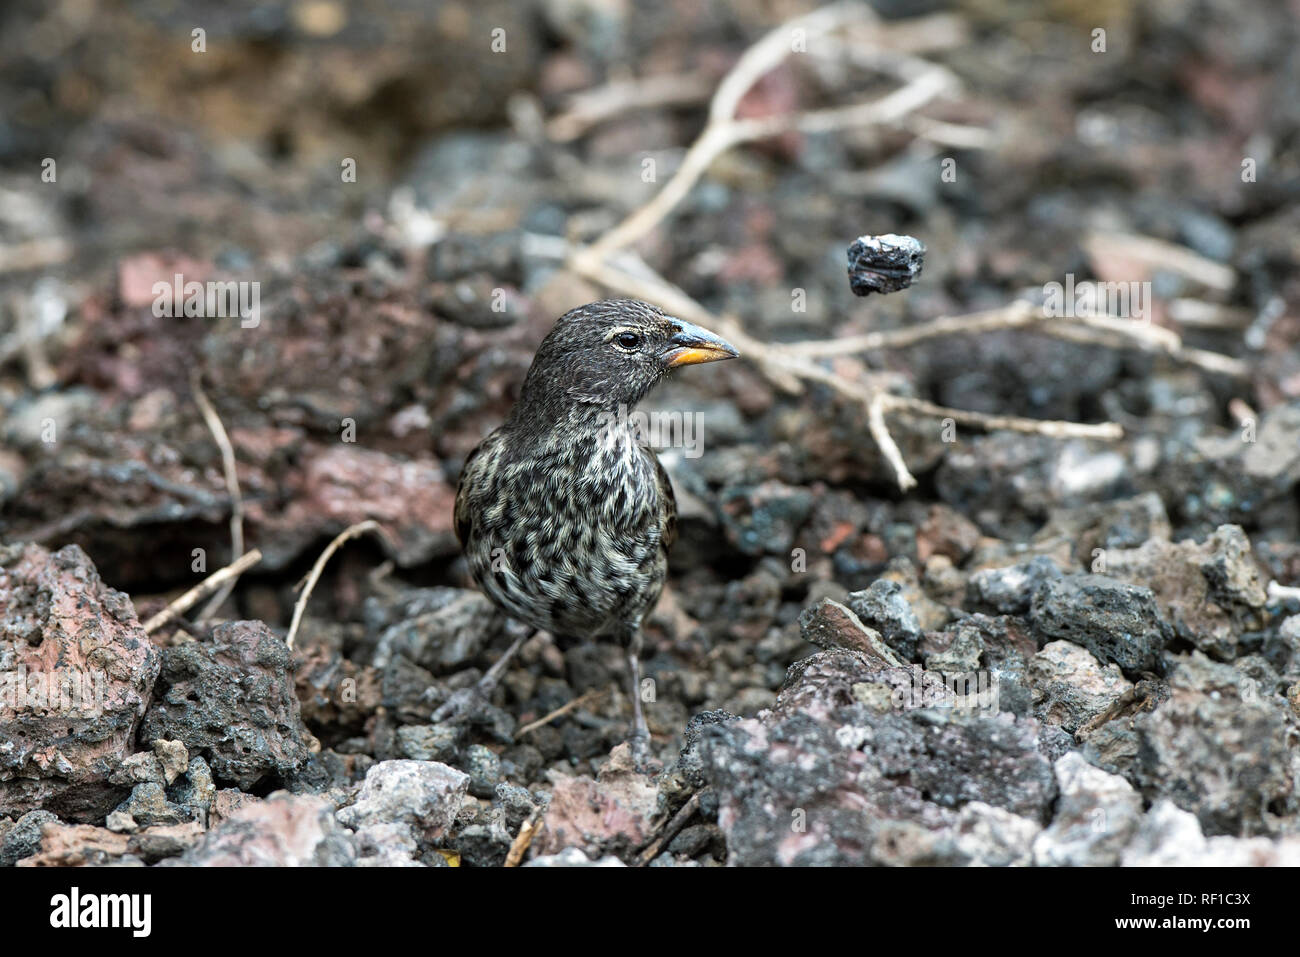 Darwin finch Medium Ground Finch (Geospiza fortis) removing stones in search for food, Isabela Island, Galapagos Islands, Ecuador - Stock Image